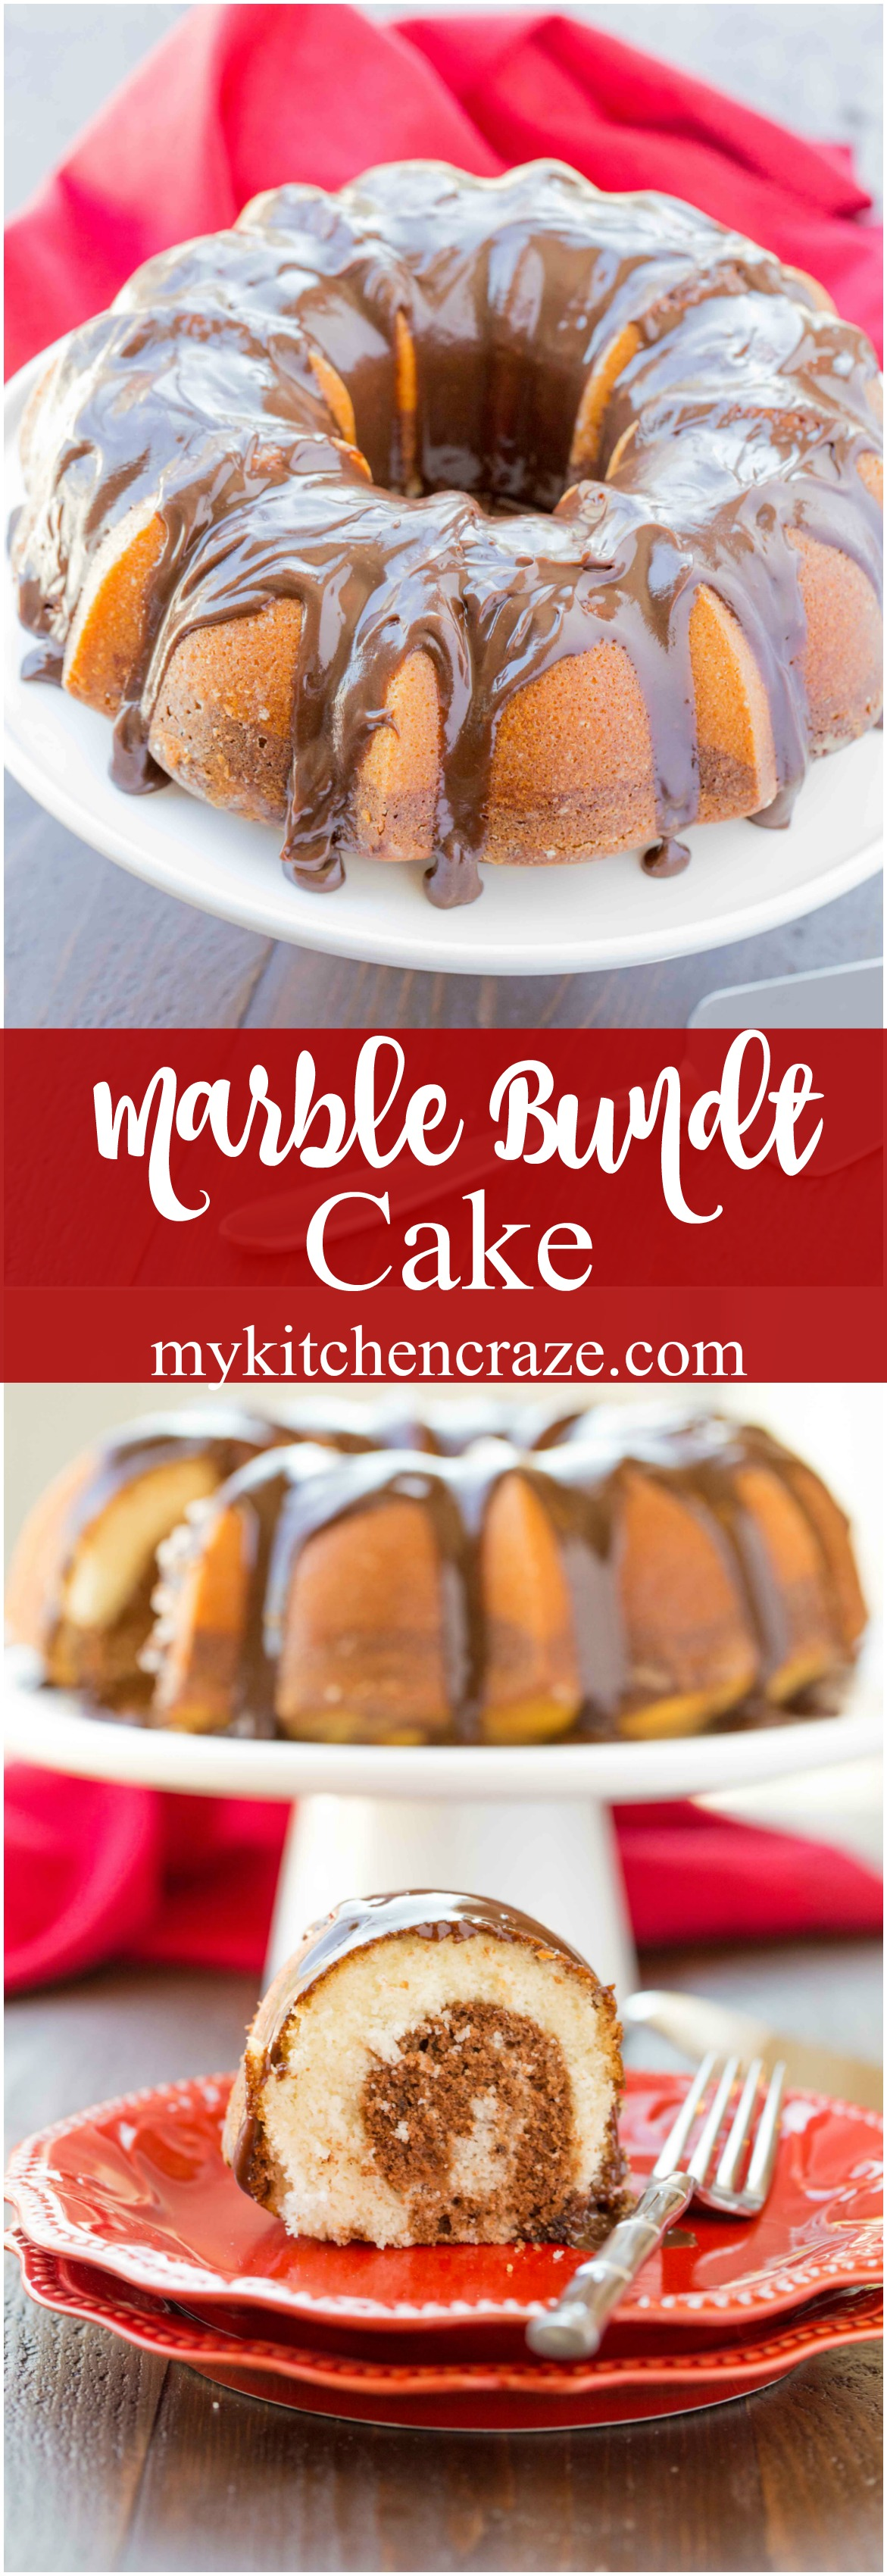 Marble Bundt Cake ~ mykitchencraze.com ~ Super easy marble bundt cake, topped with luscious chocolate ganache. This is one cake you'll want to make!